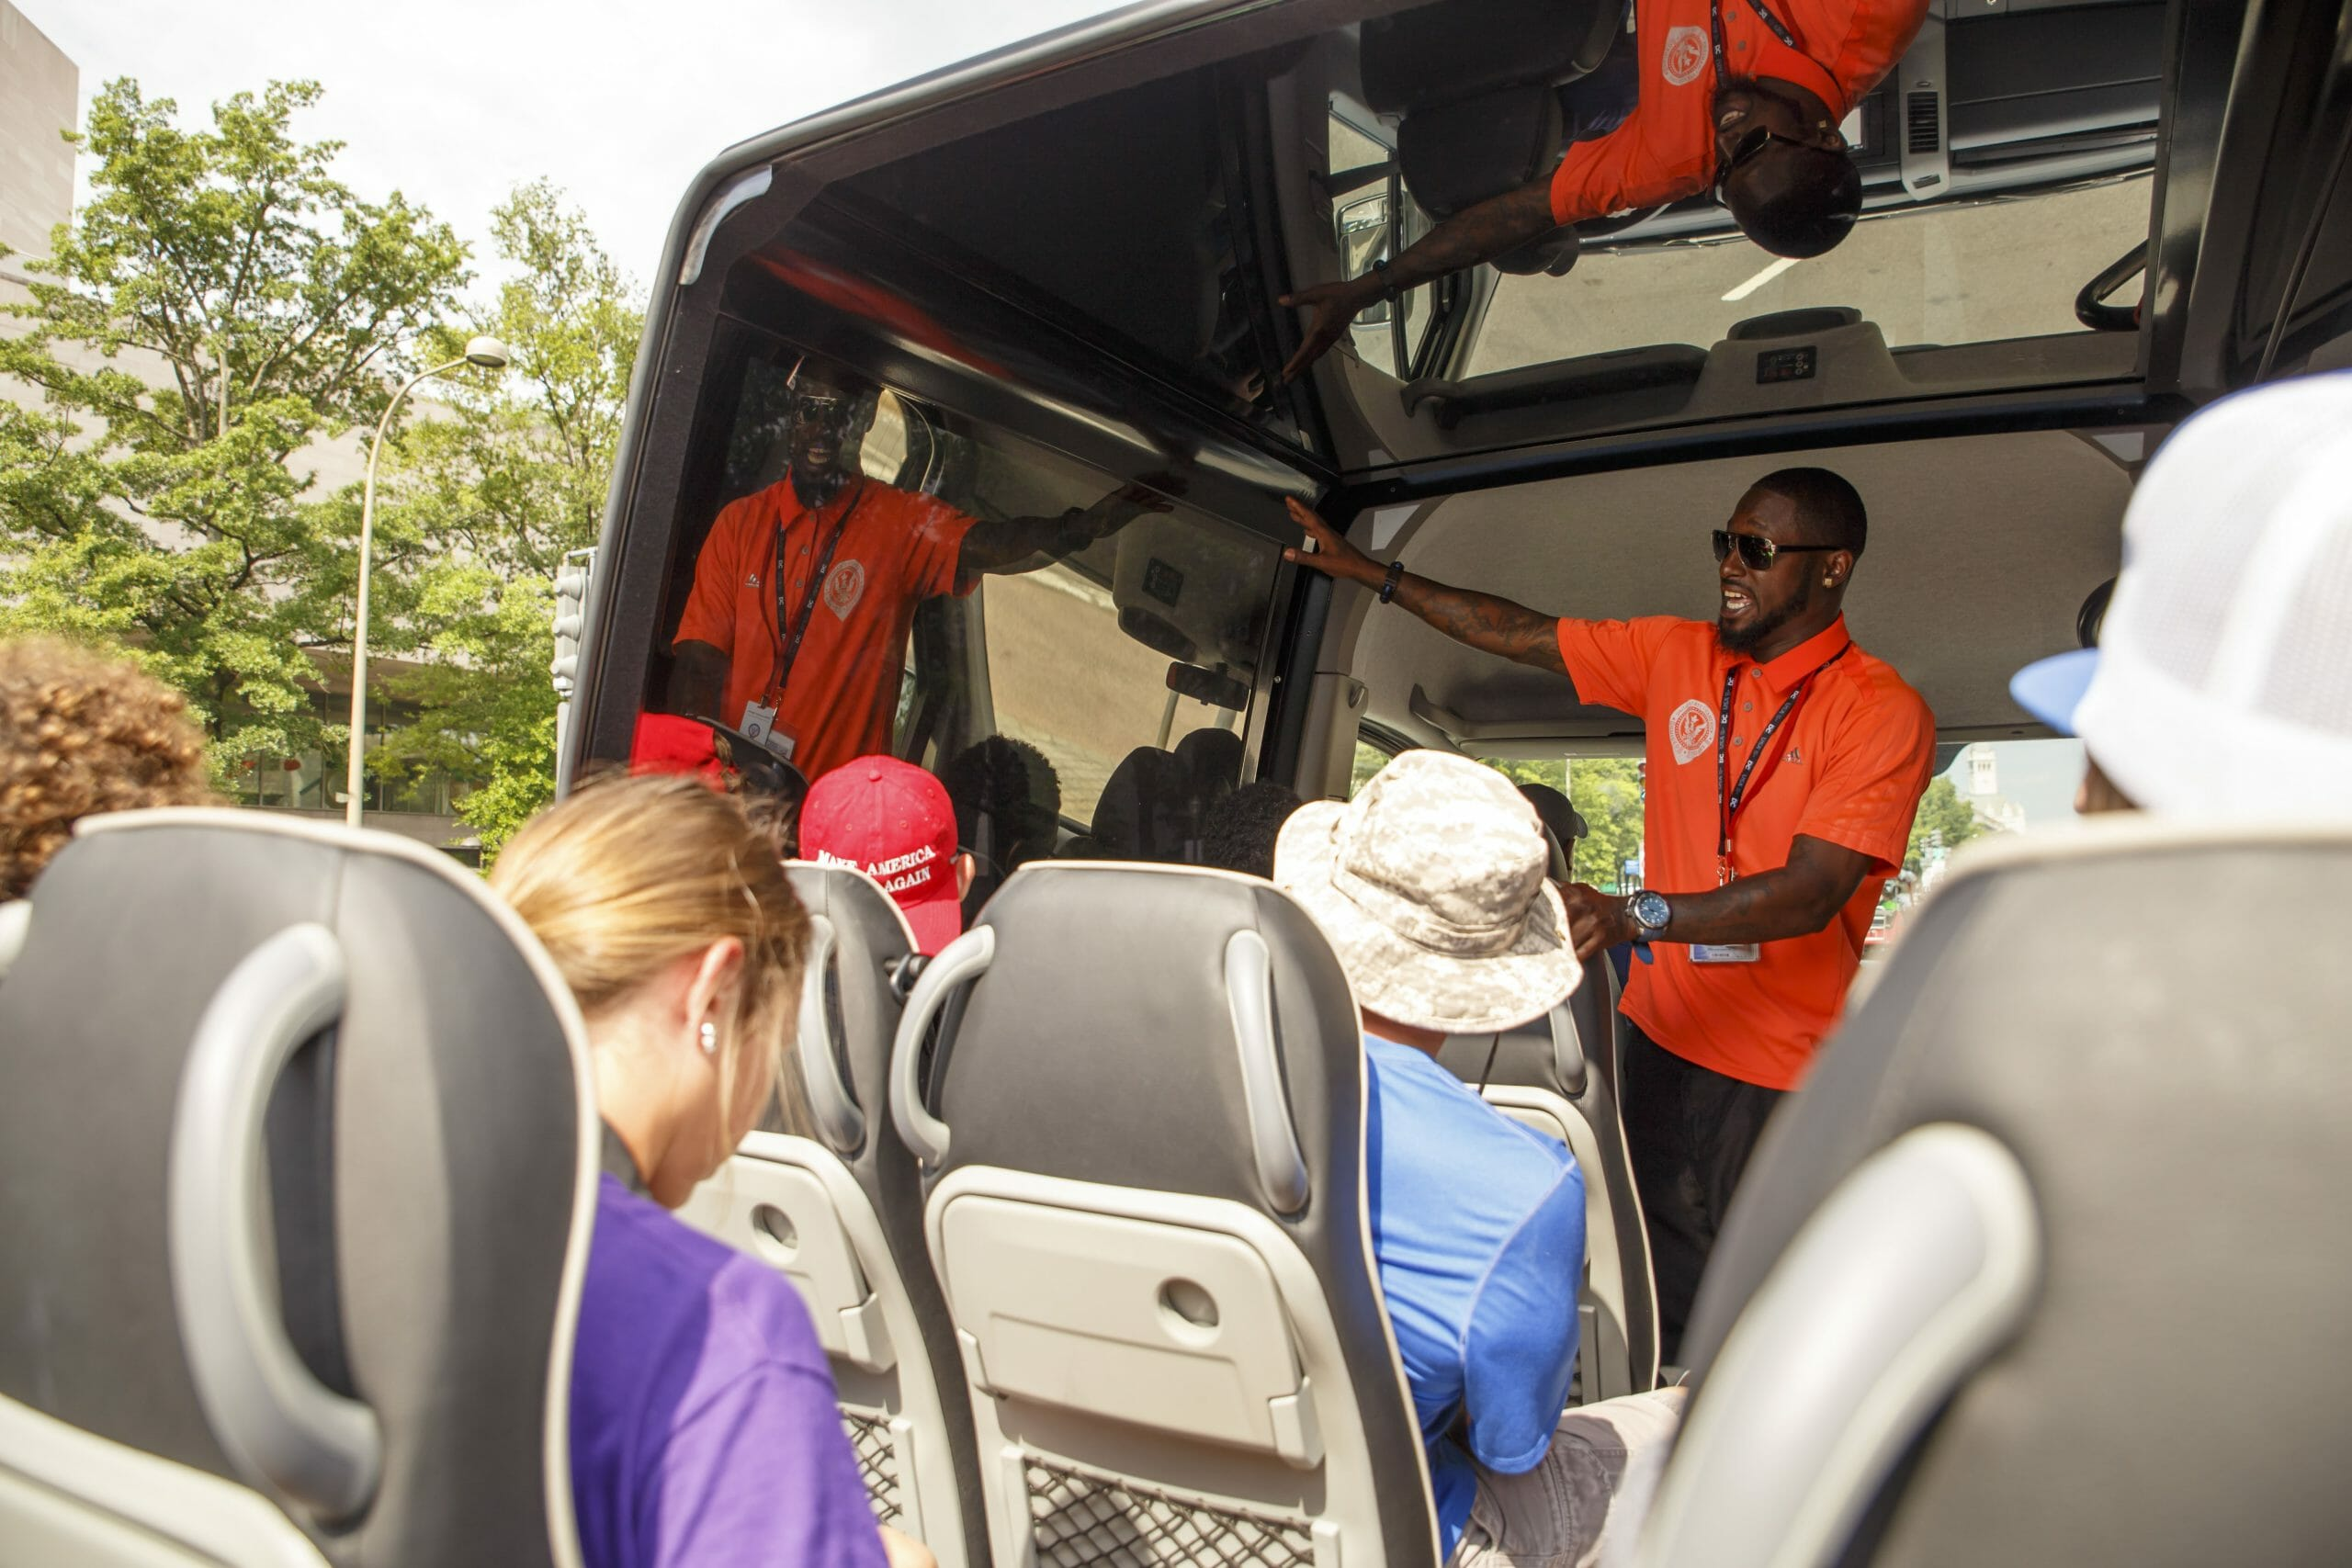 USA Guided Tours – Luxurious Bus Tours and Car Service